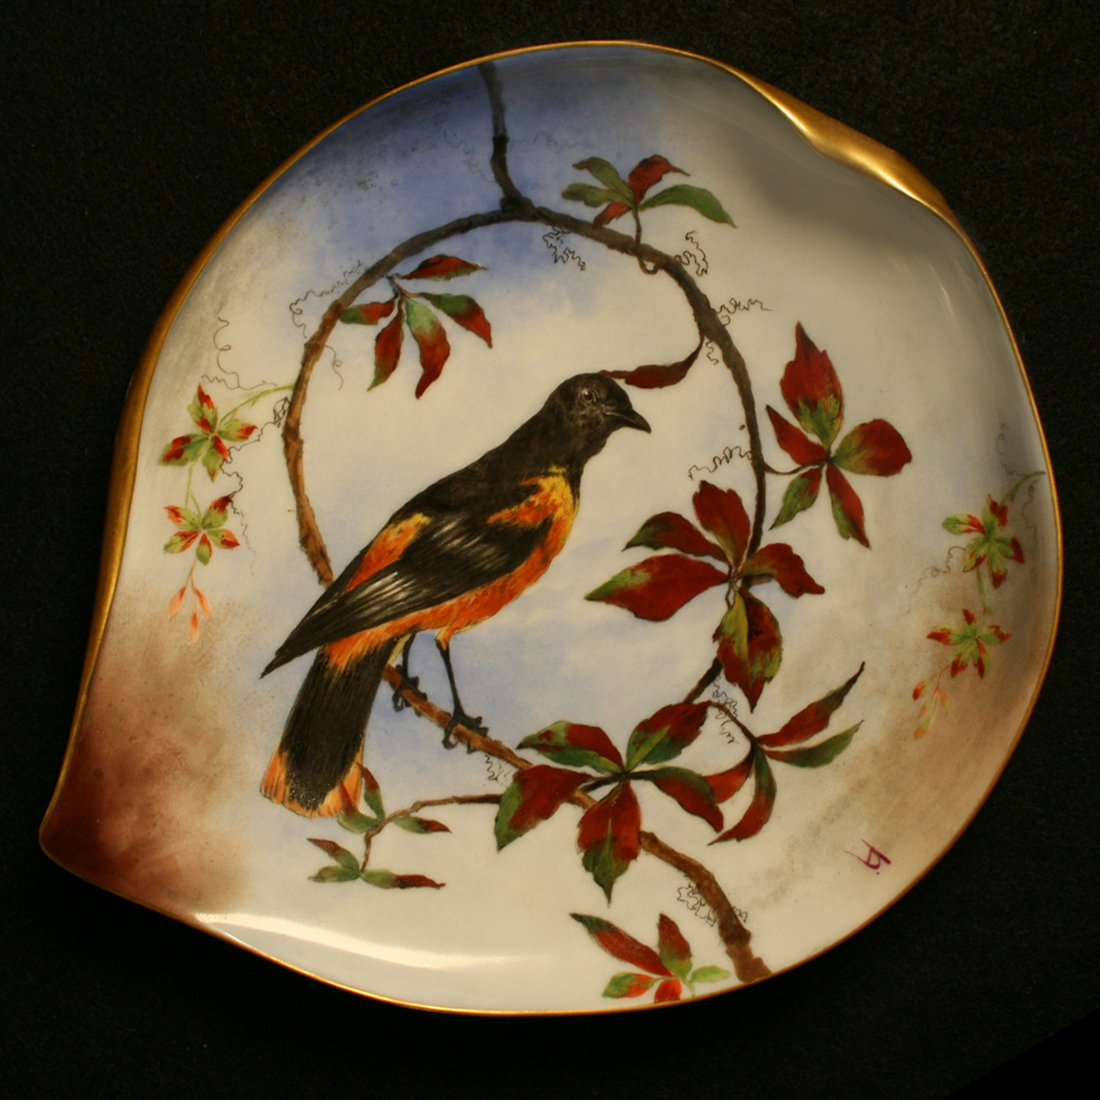 hayes_w.h_china_full_oriole_shot_rutherford-hayes-dessert-plate-1.jpg